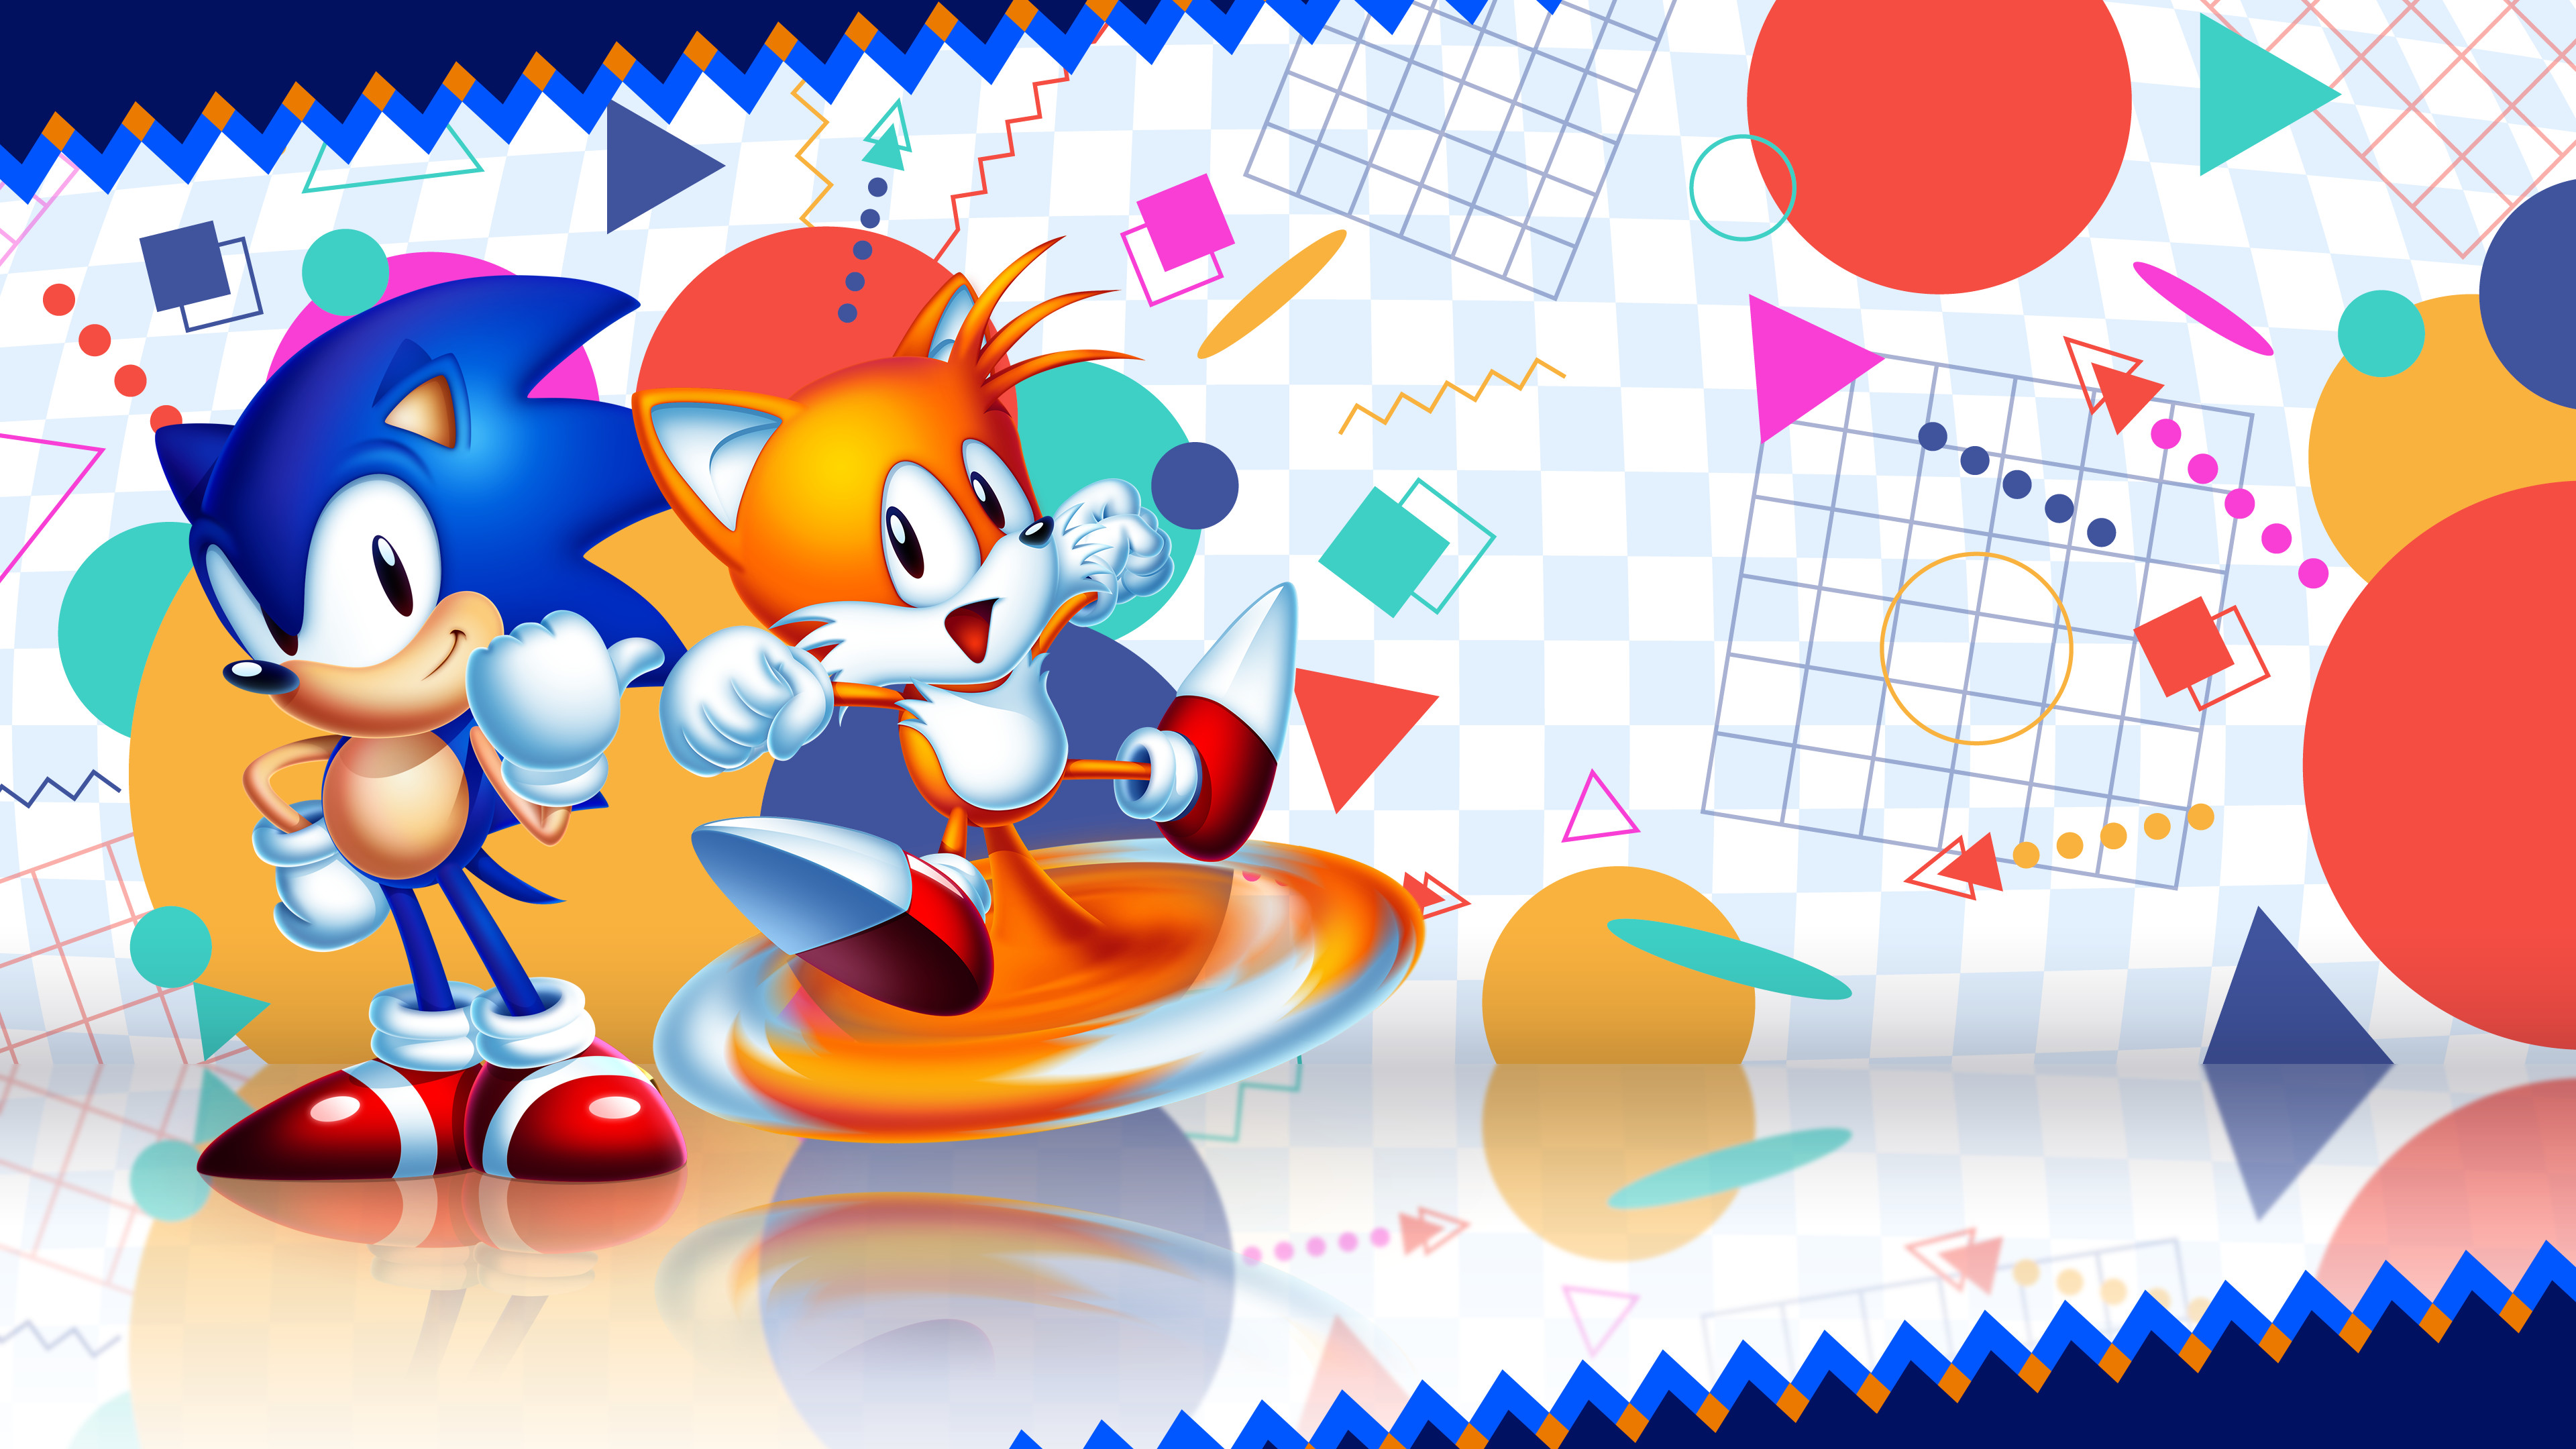 3840x2160 By the Fans, For the Fans - Sonic 2 HD wallpaper by TimeWarp33